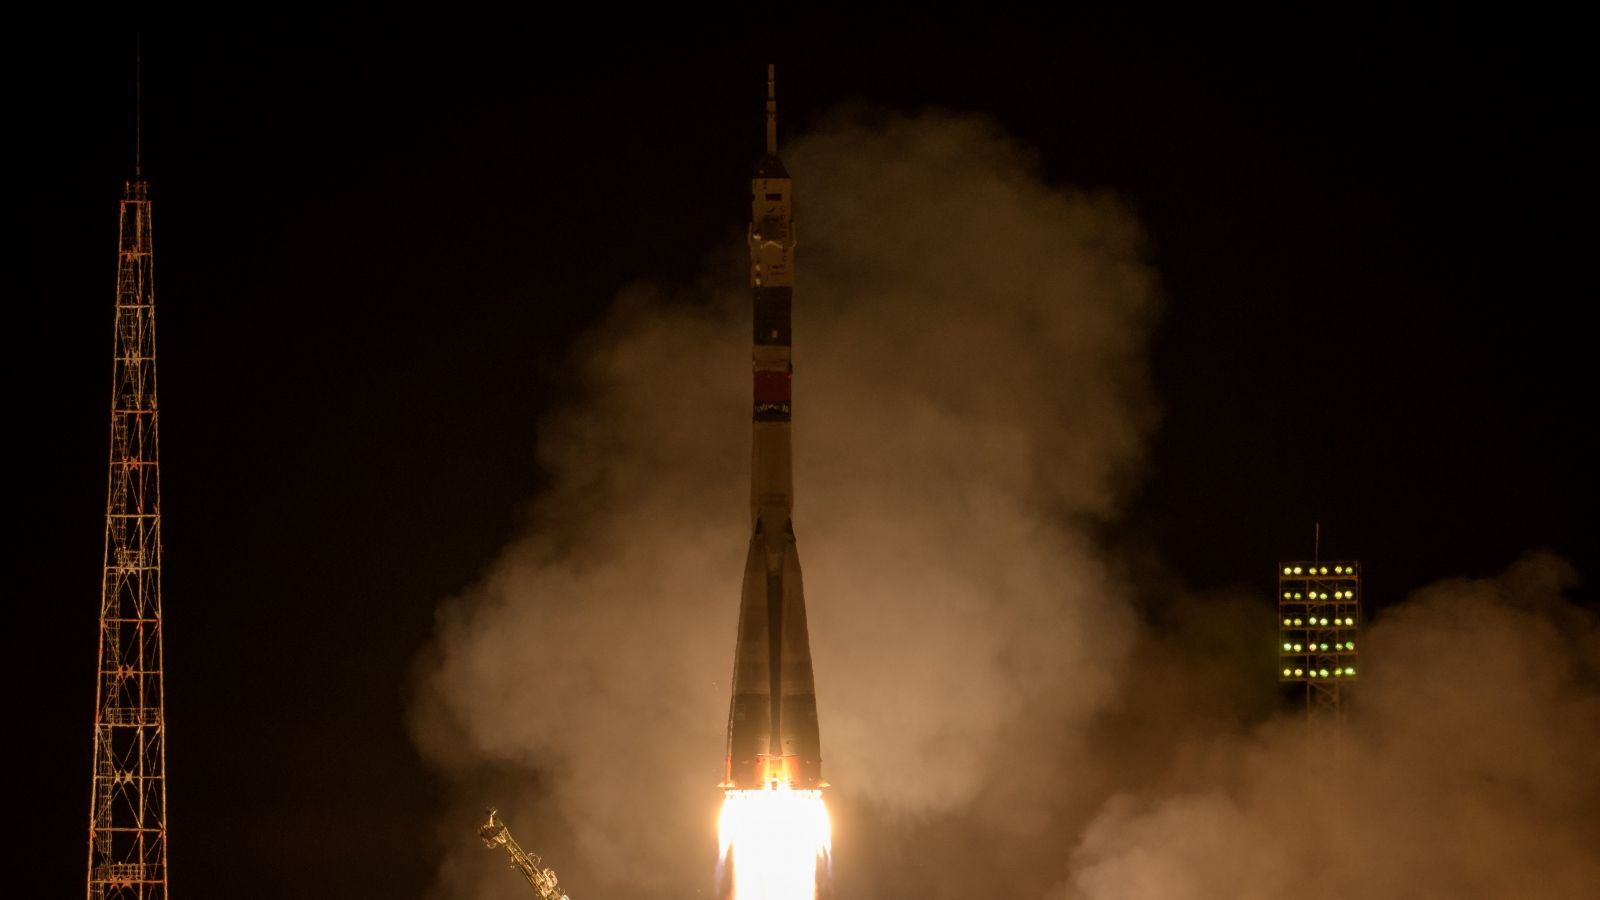 Soyuz MS-12 launches with two astronauts and a cosmonaut on a trip to the International Space Station. Photo Credit: Bill Ingalls / NASA